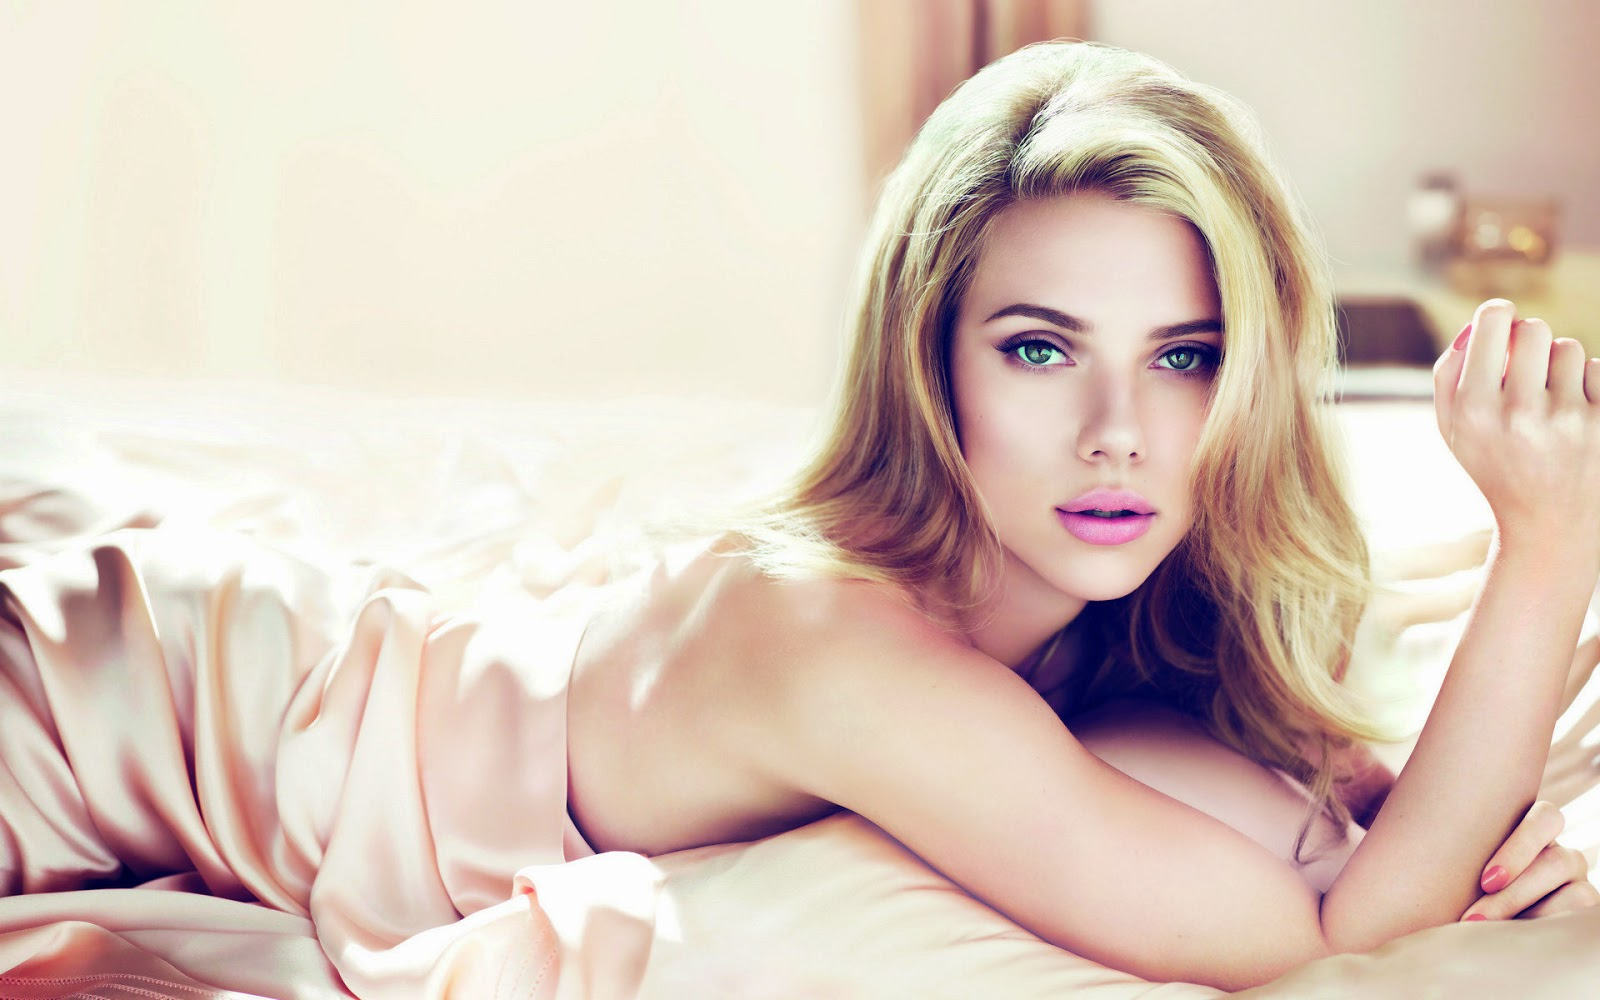 A beautiful green eyed blonde woman (scarlett johansson) lying on a bed wrapped in cream colored satin sheets